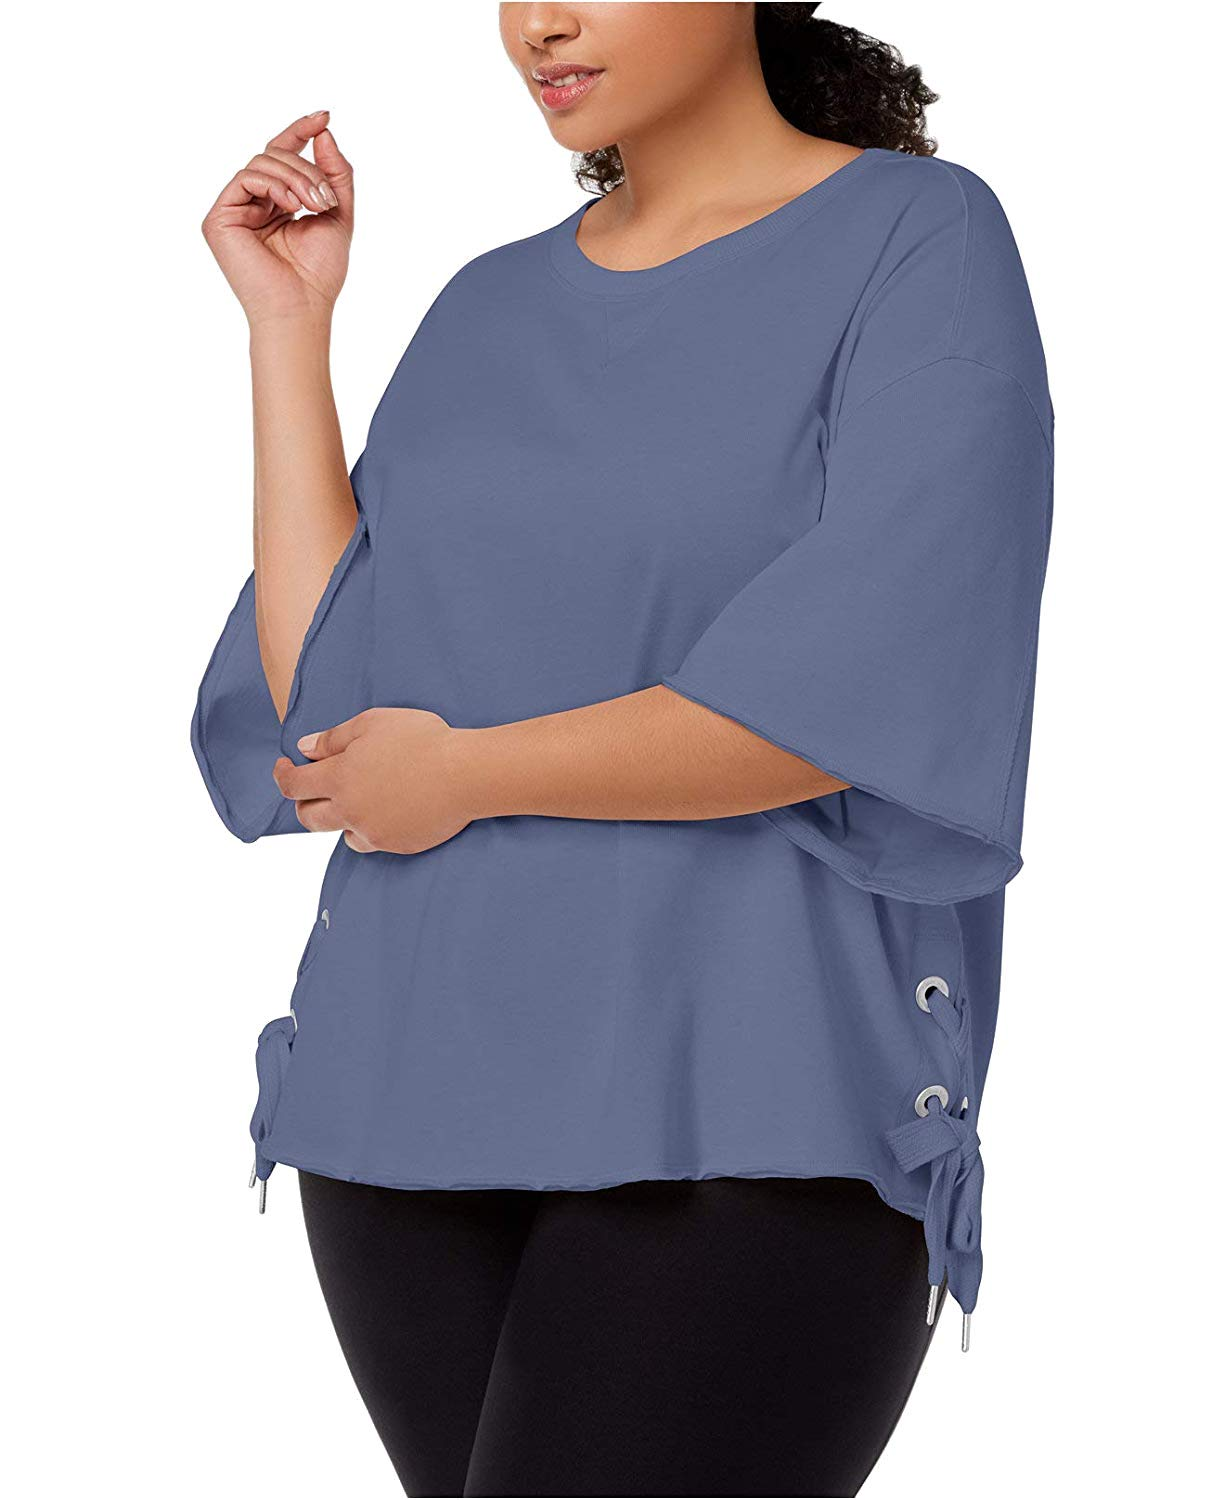 4979e639adb6be Calvin Klein Women s Plus Size Relaxed Bell-Sleeve Top Blue Ashes 2X   Amazon.com.au  Fashion